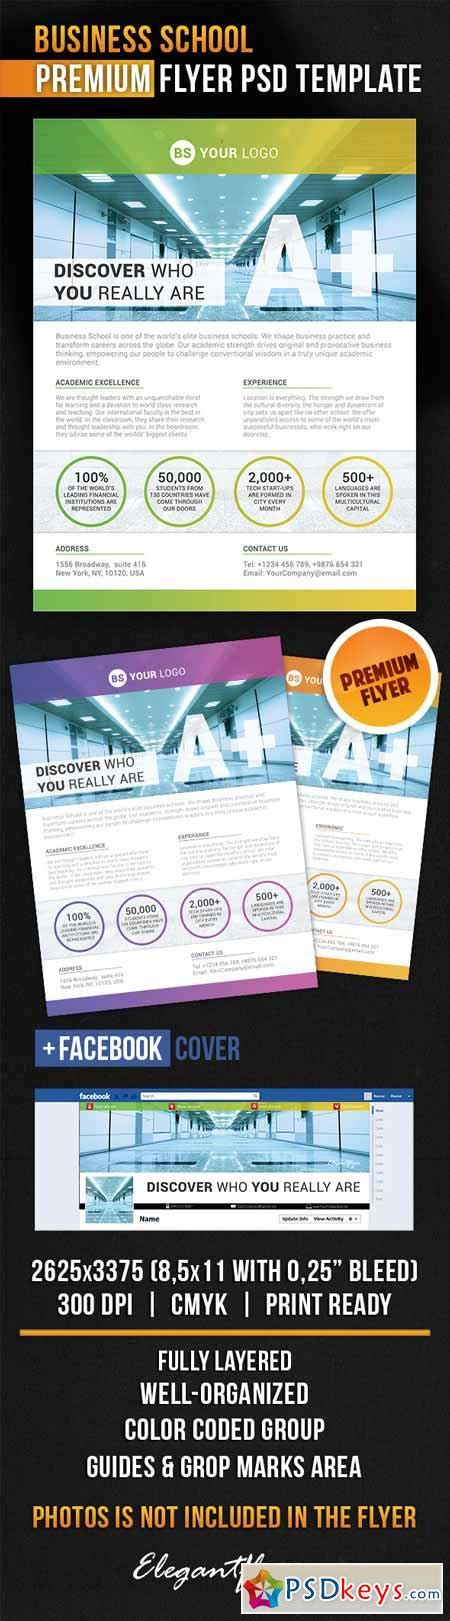 business school flyer psd template facebook cover